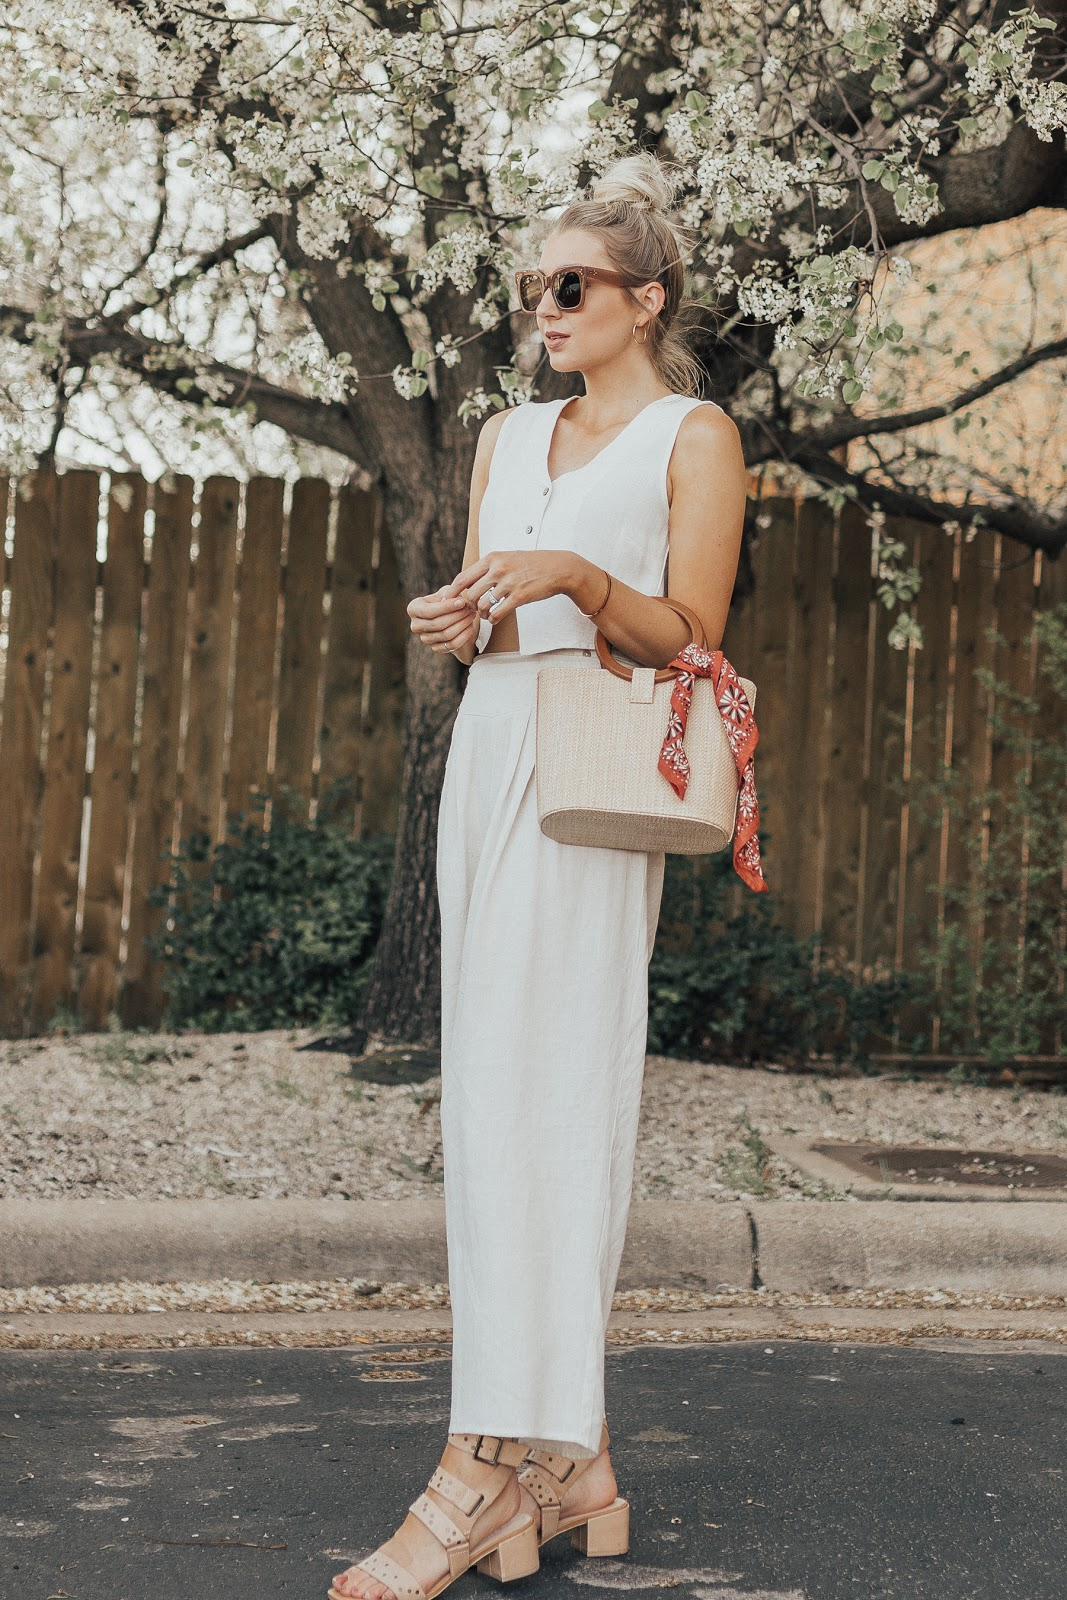 cream outfit for spring | Love, Lenore